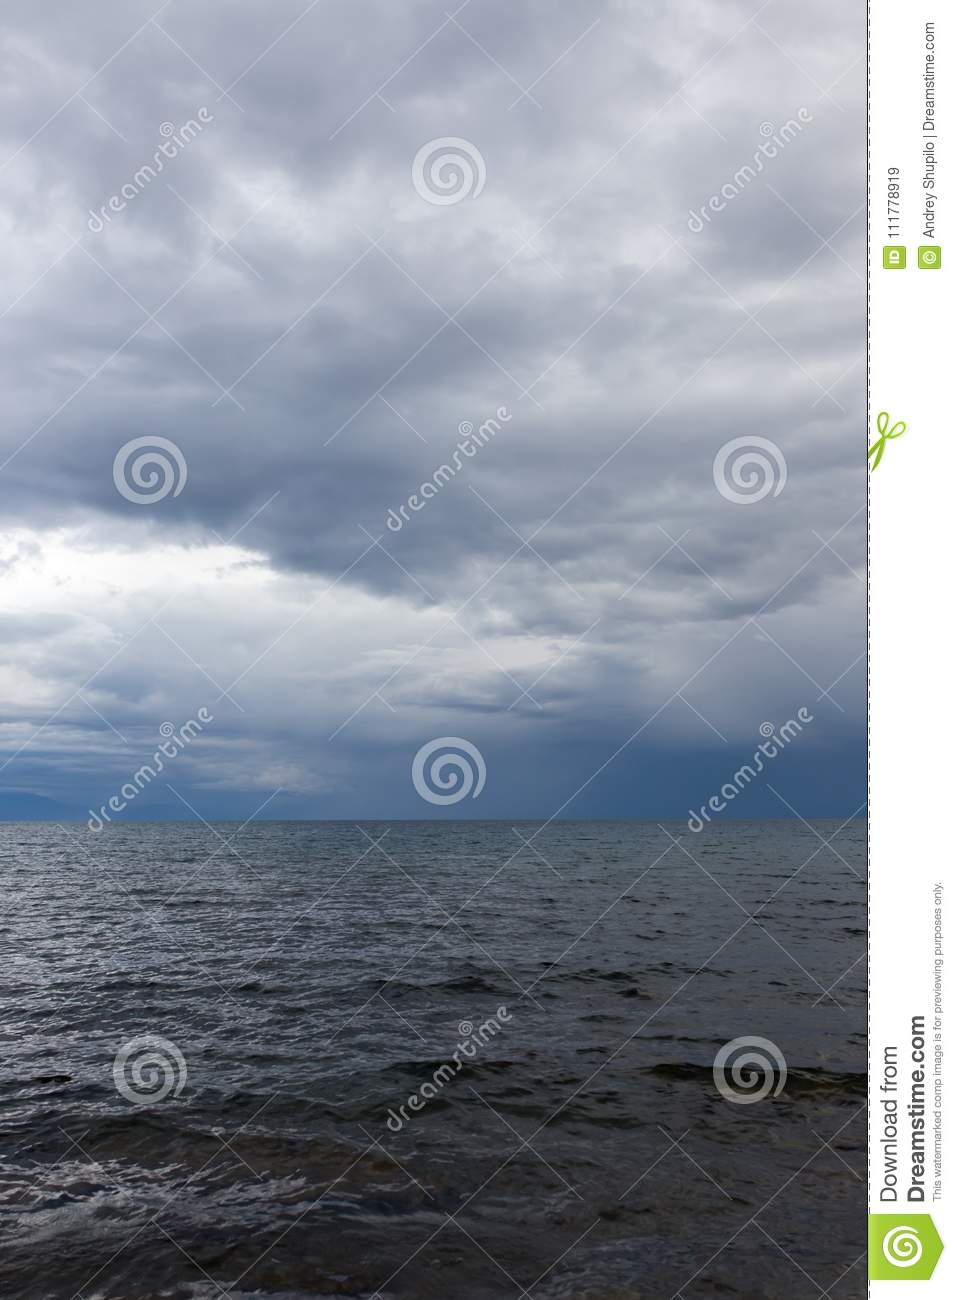 Cloudy weather on the sea as background